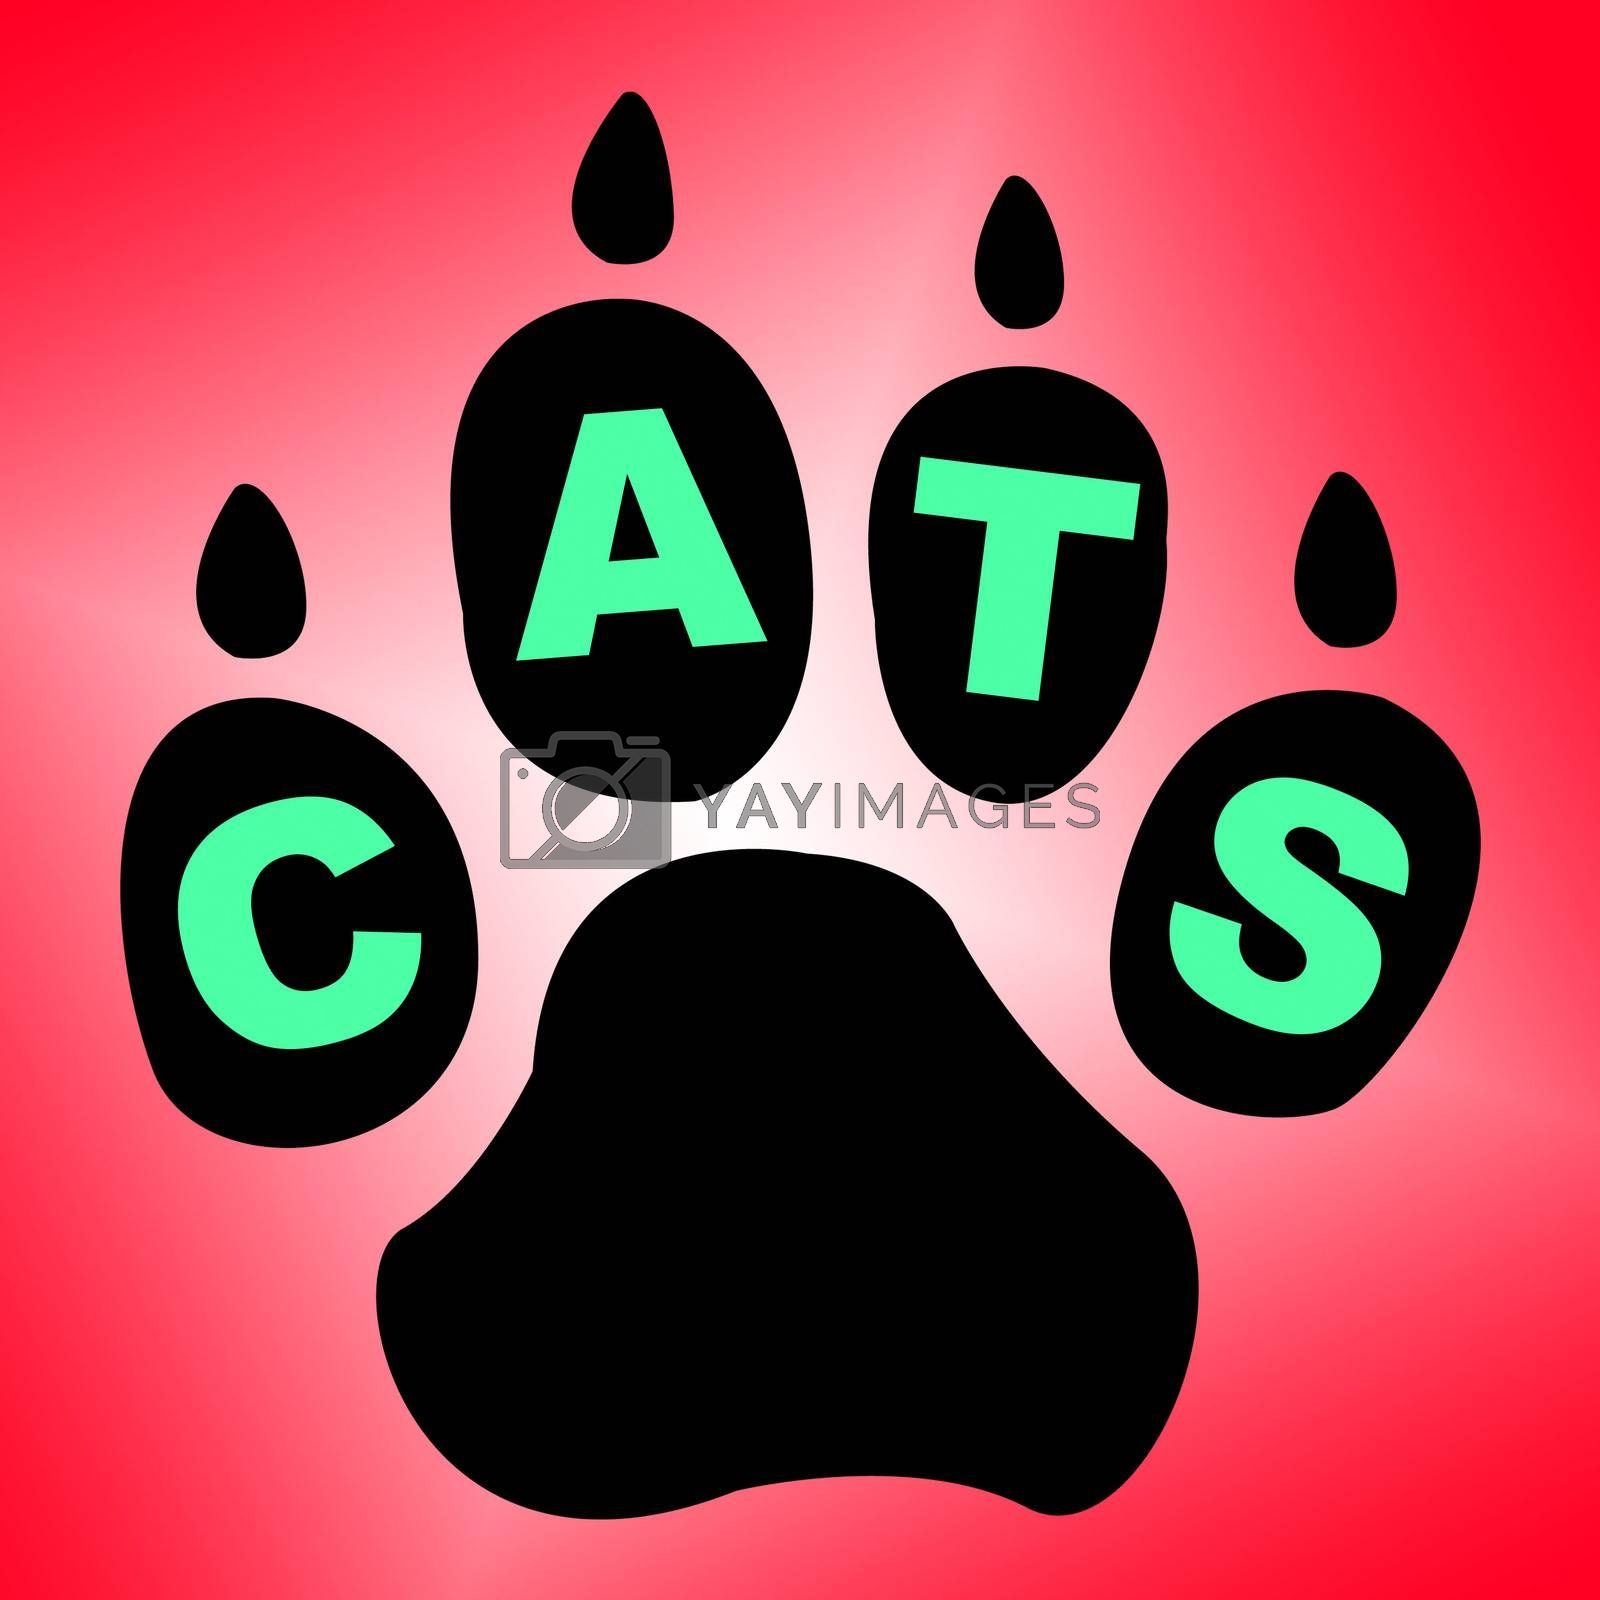 Cats Paw Shows Pet Services And Feline by stuartmiles